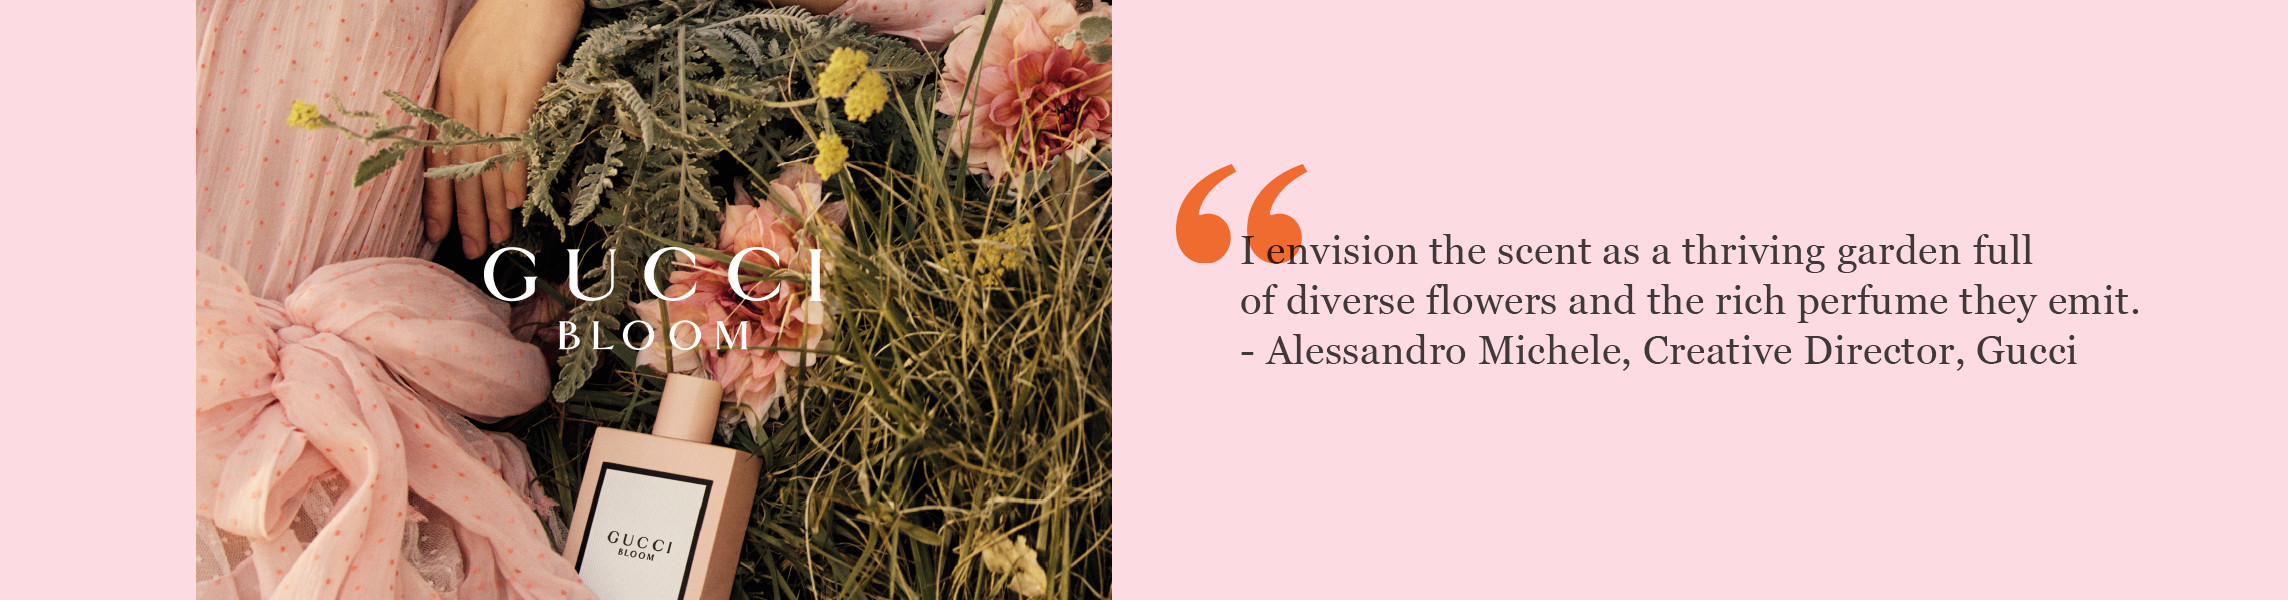 I envision the scent as a thriving garden full  of diverse flowers and the rich perfume they emit.  - Alessandro Michele, Creative Director, Gucci